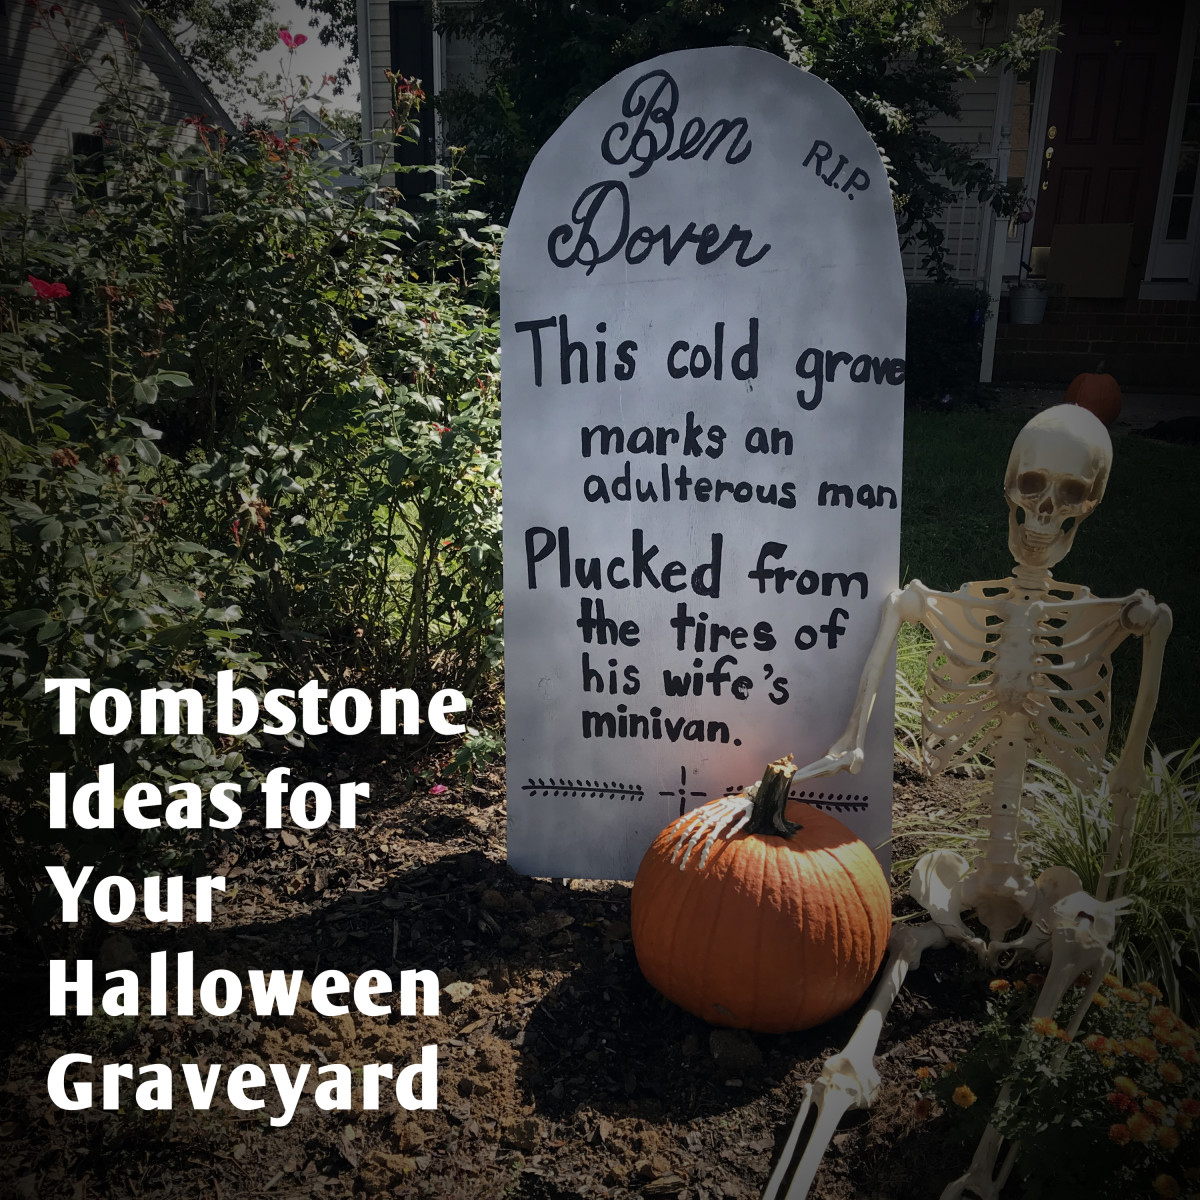 tombstone ideas for your halloween graveyard | feltmagnet